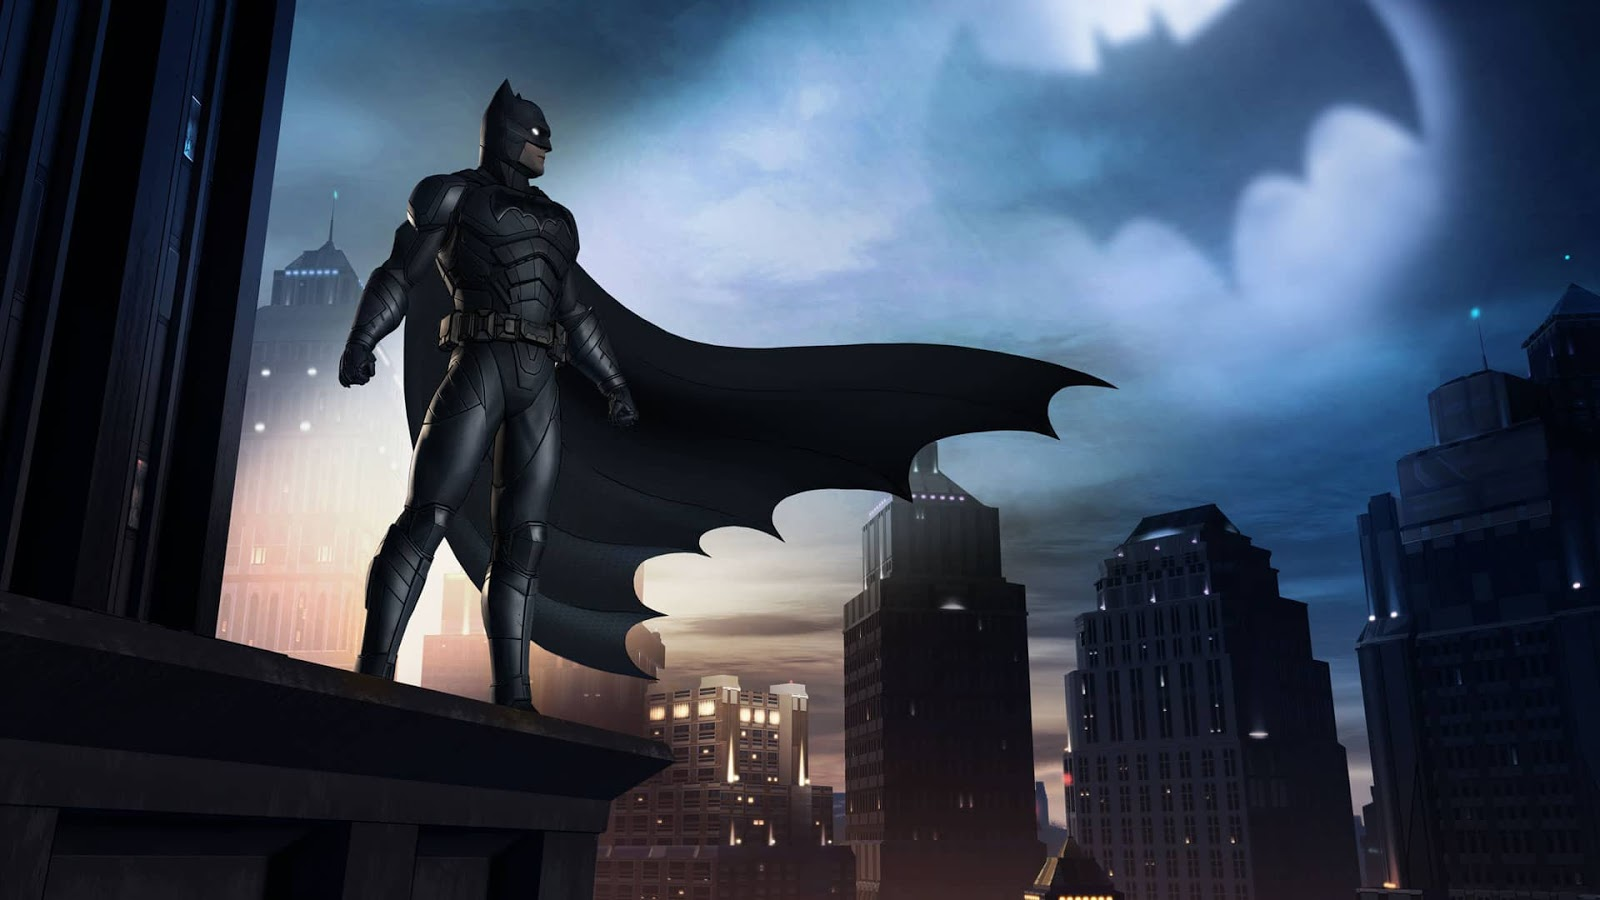 Val Kilmer talks about the incident that caused him to quit his role as Batman